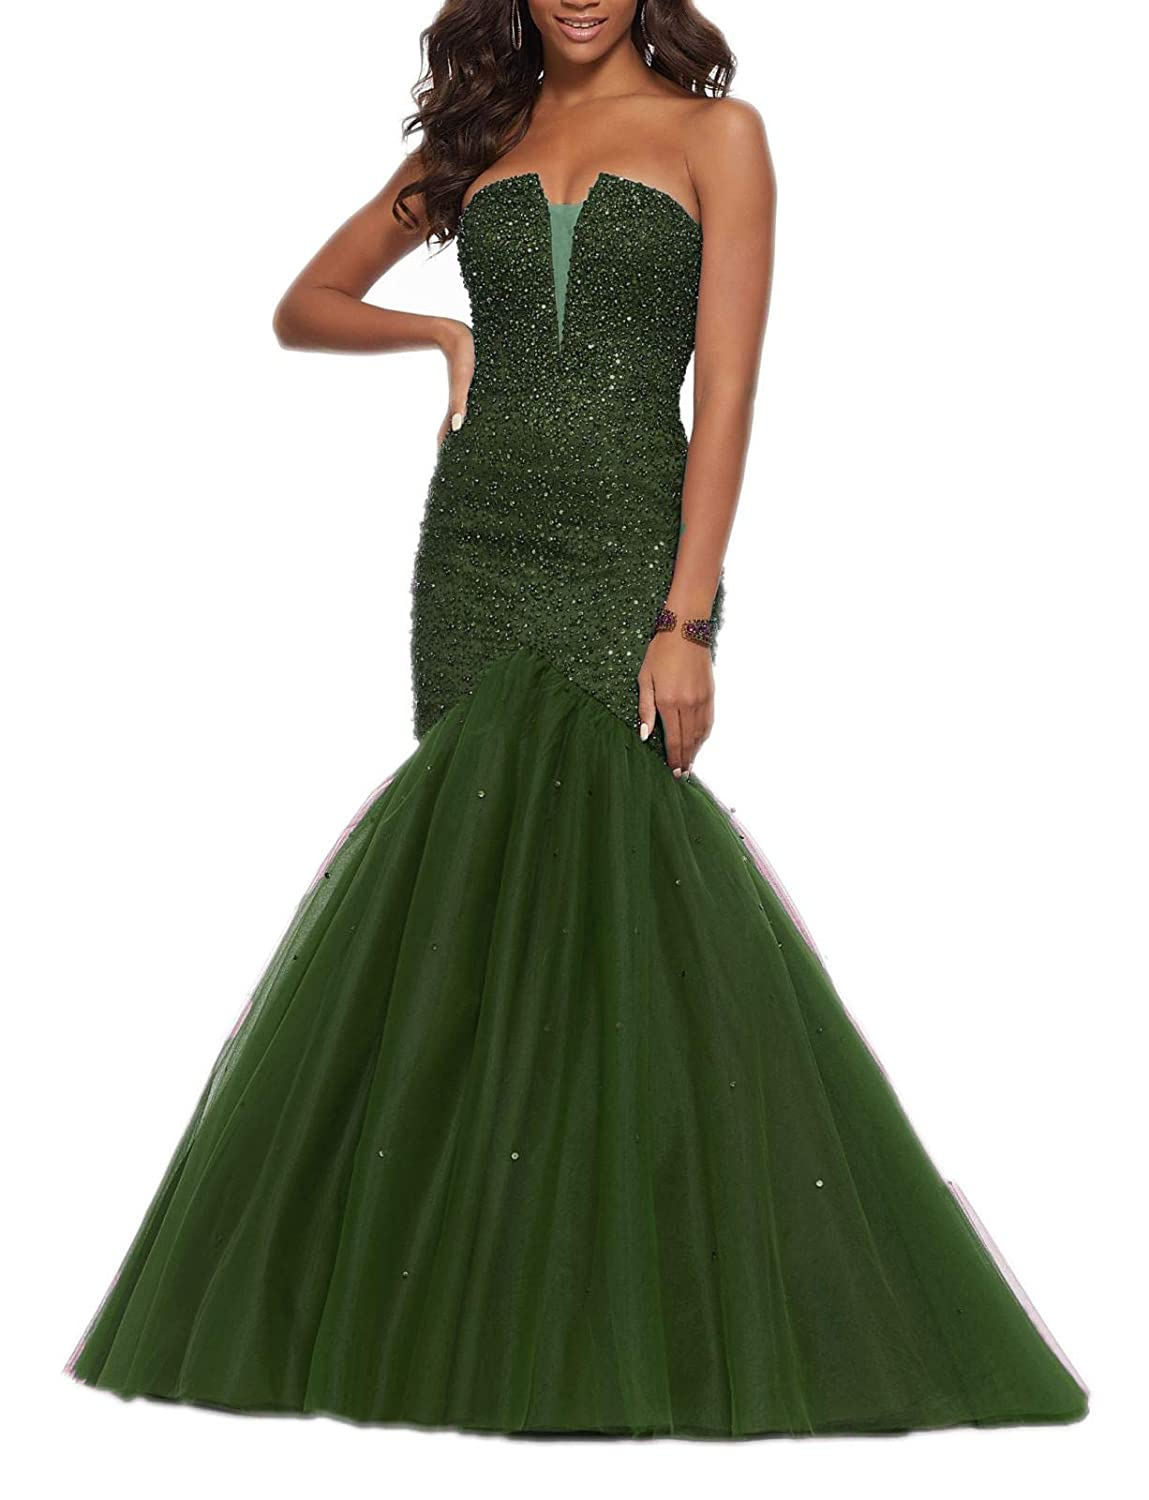 Green 2 Wanshaqin Women's Lace Appliques Wedding Dress Ball Gown Evening Prom Dress Long Beading Sequined Dresses